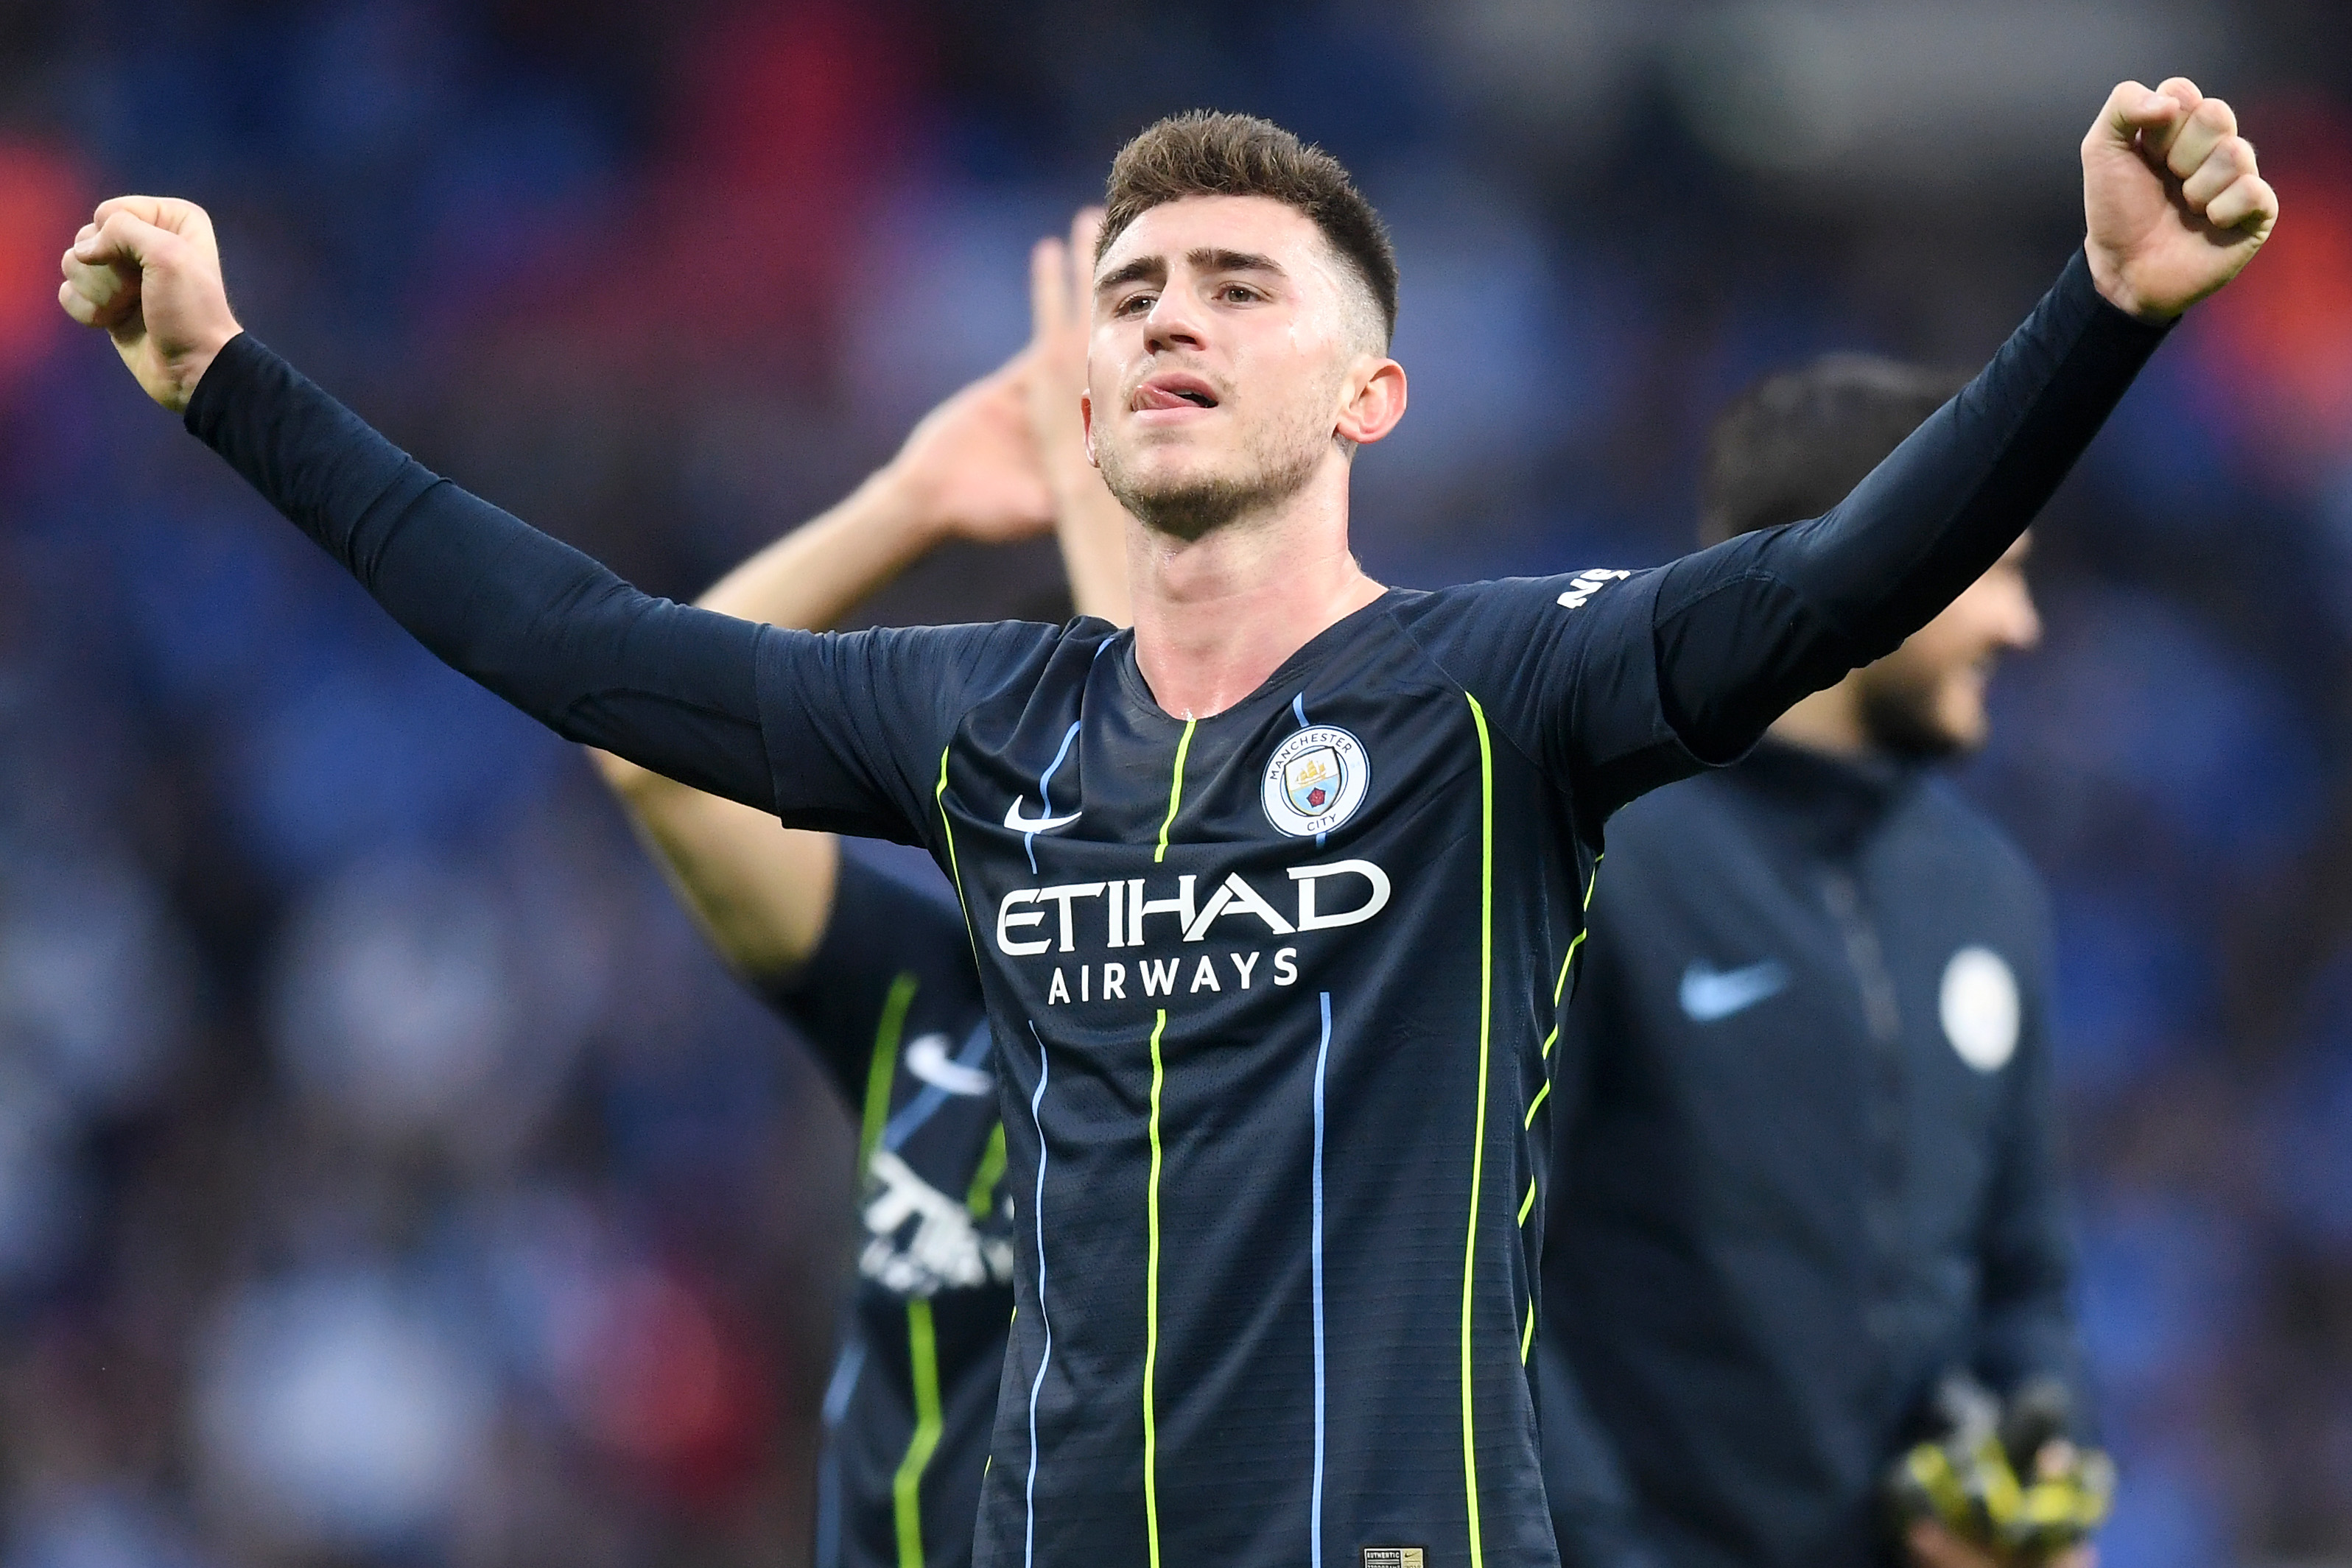 Safe to say Laporte's injury potentially derailed City' season. (Picture Courtesy - AFP/Getty Images)